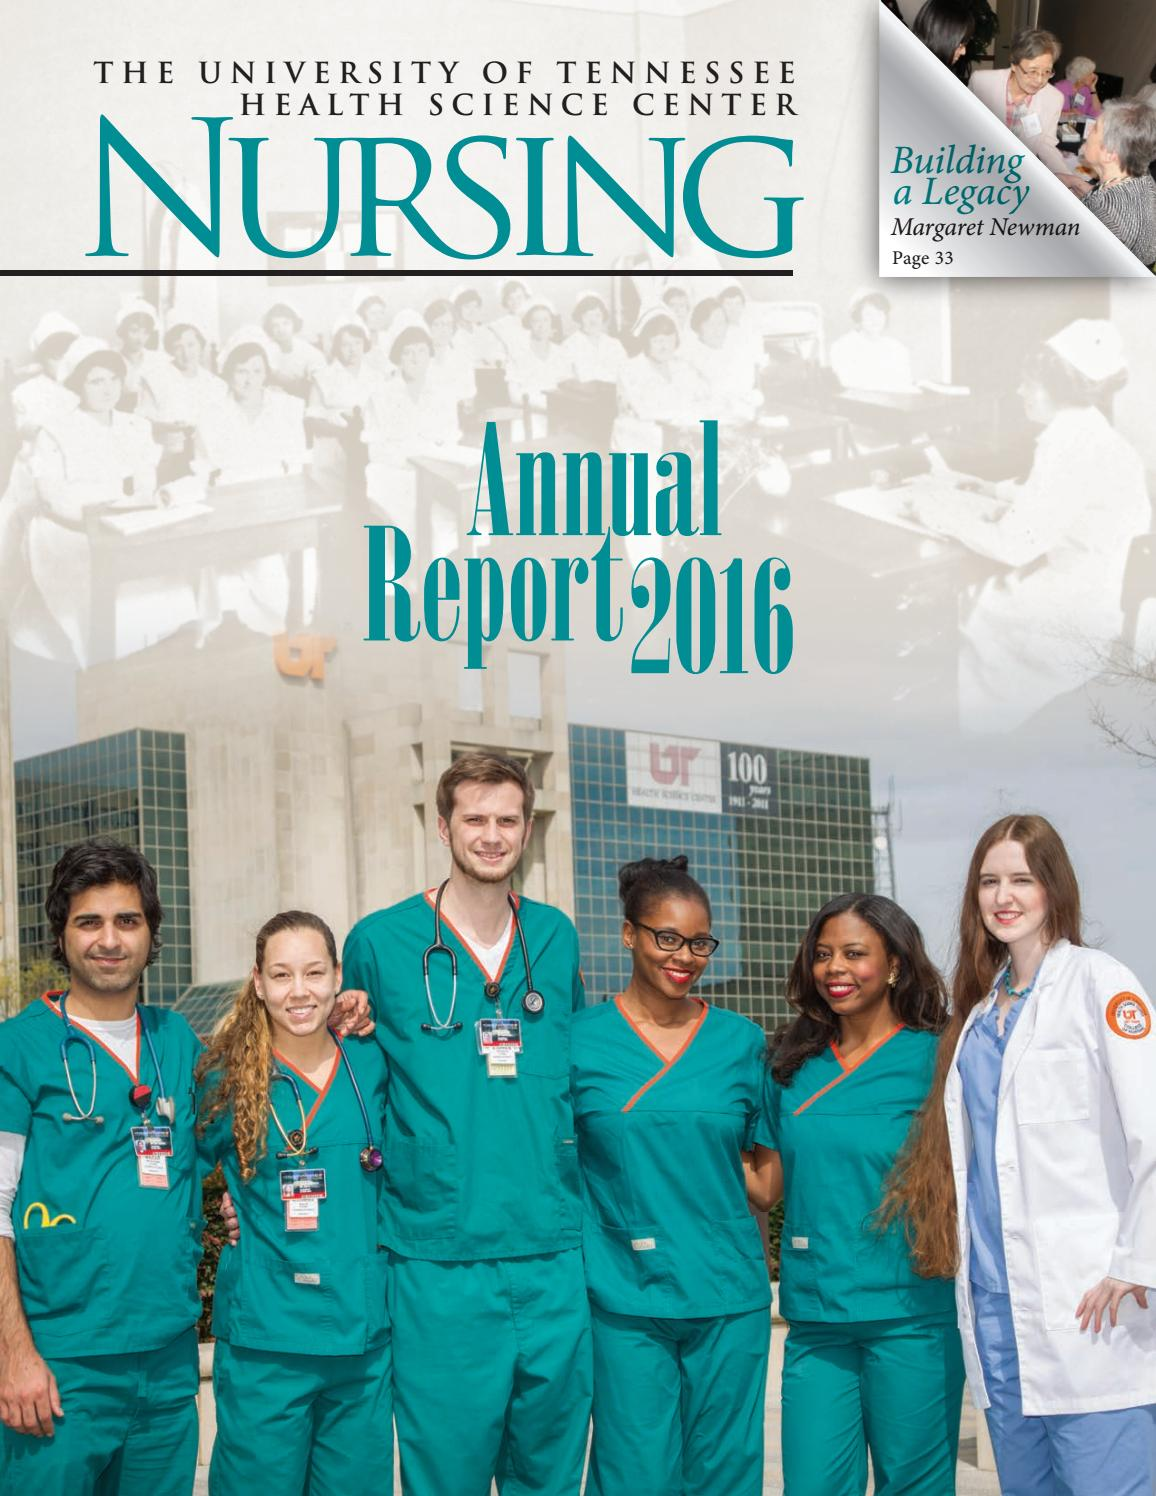 Nursing Annual Report 2016 by University of Tennessee Health